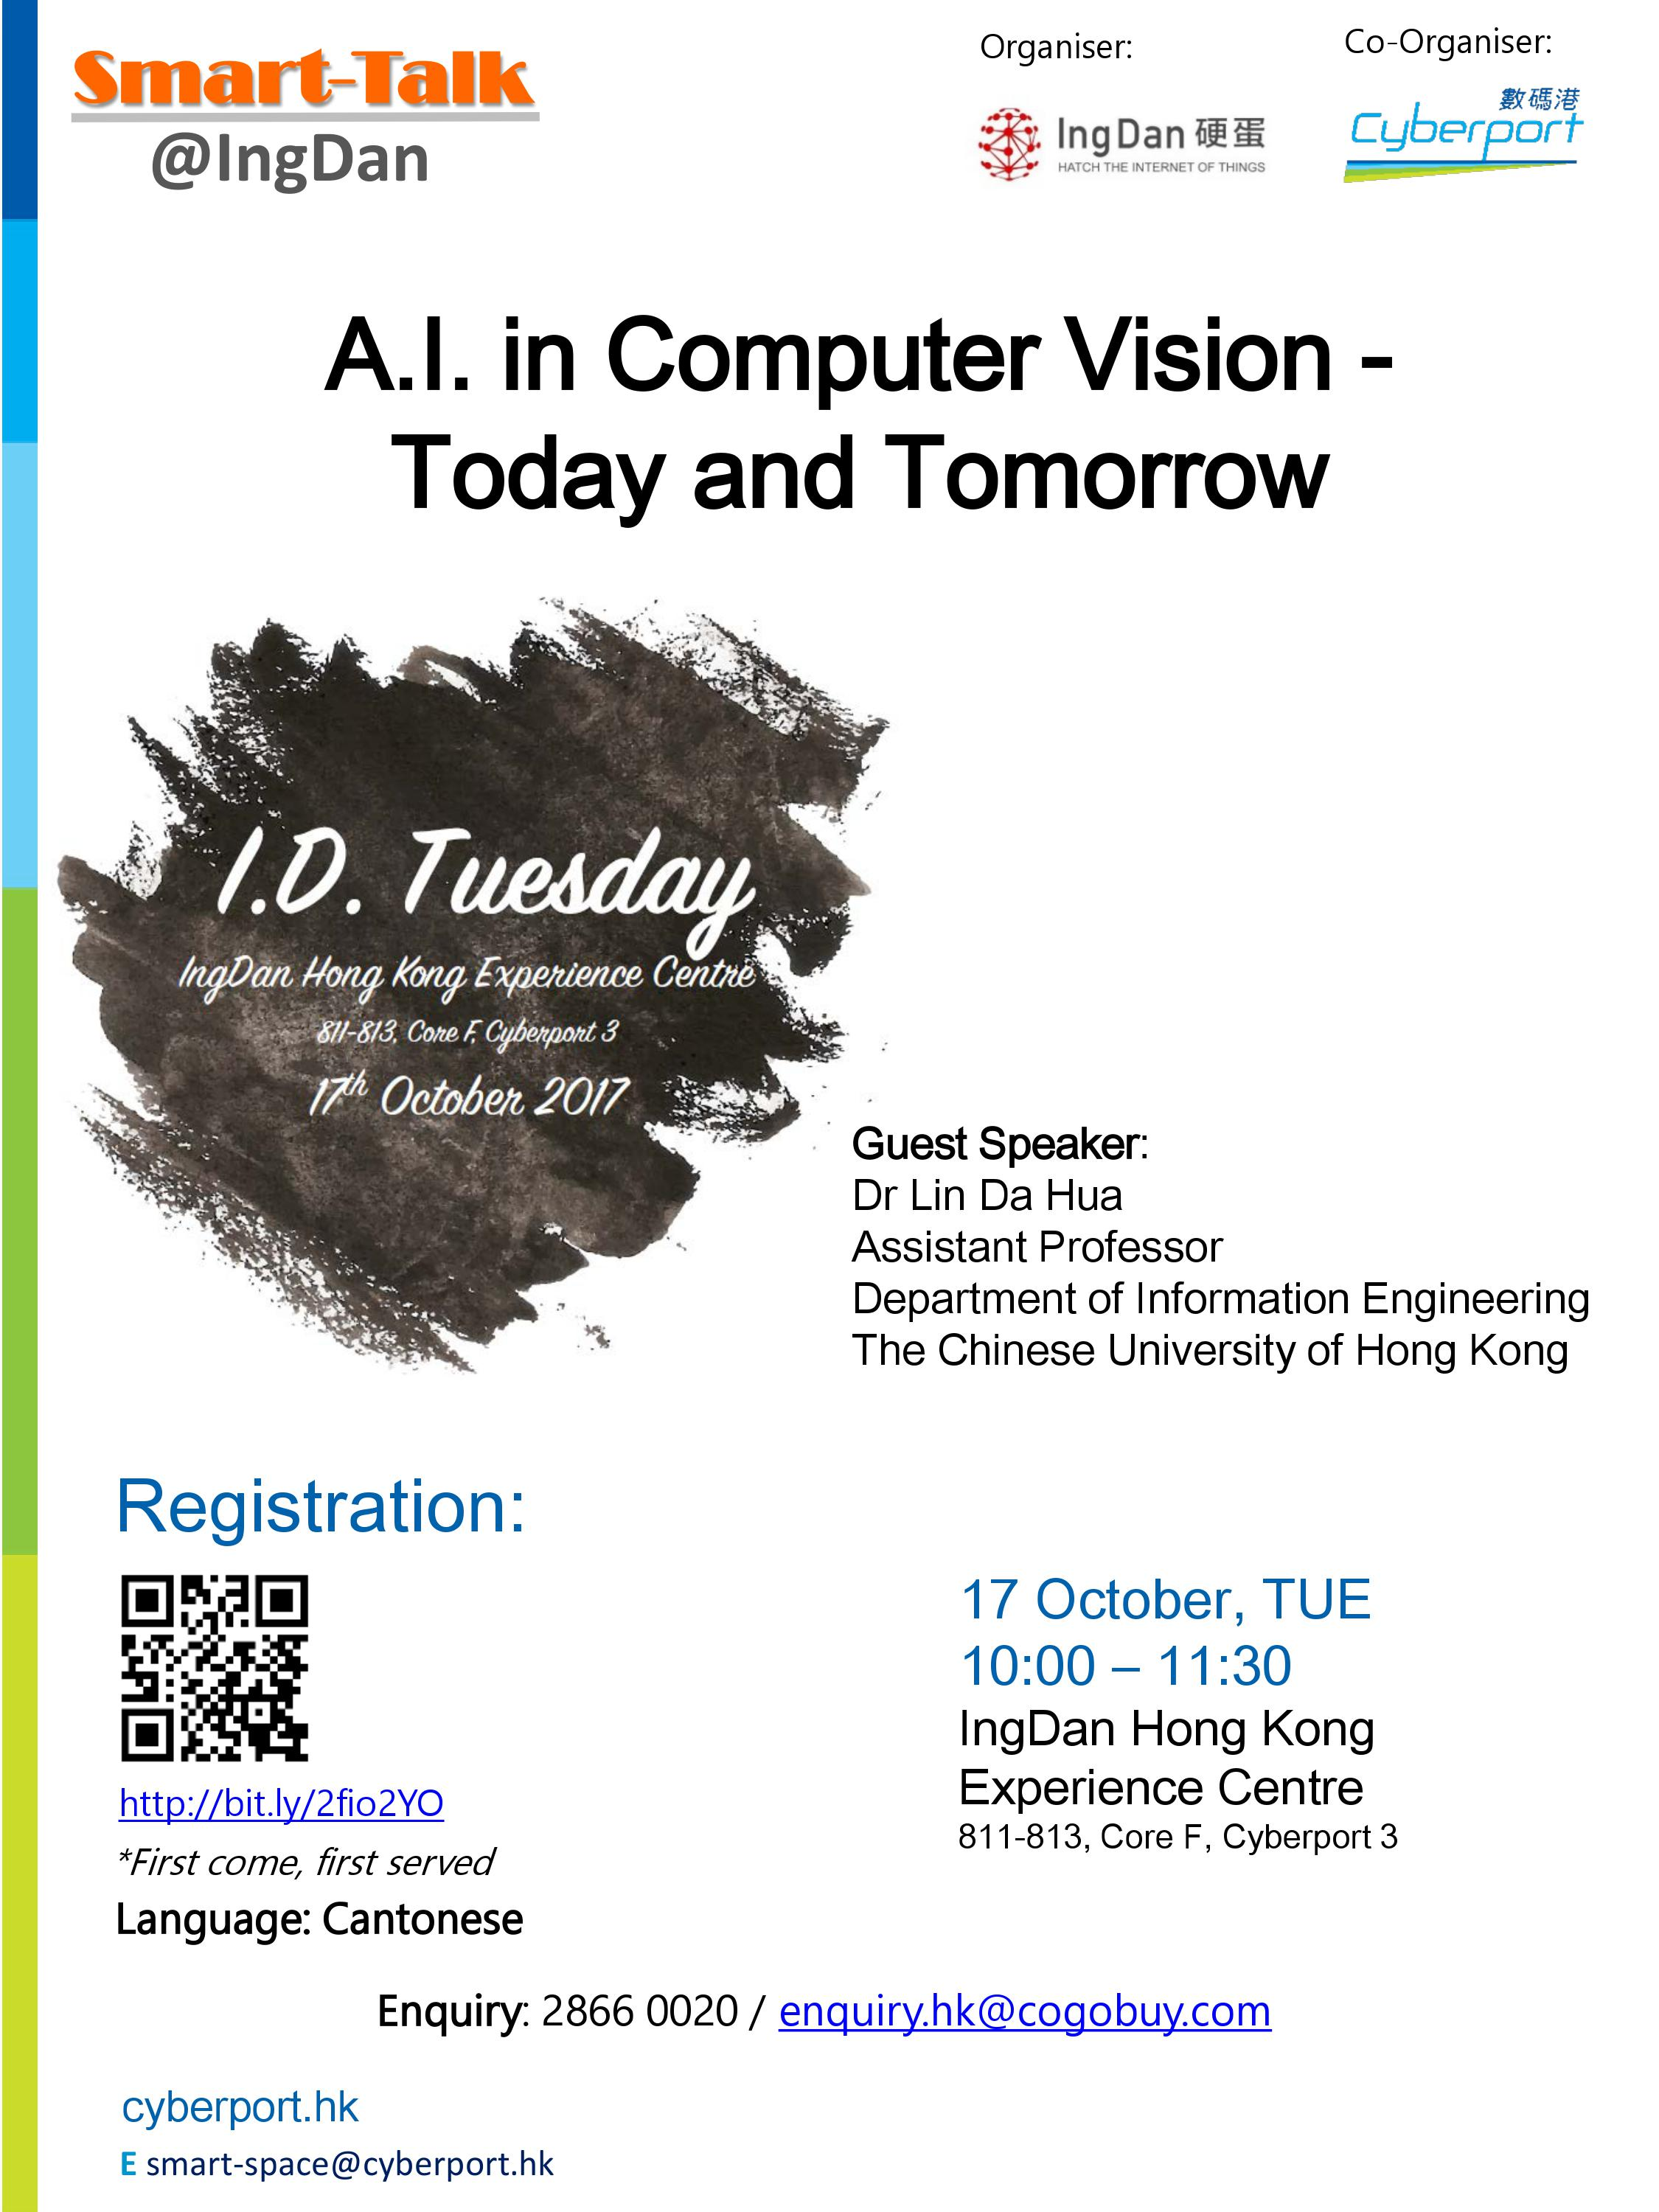 Smart Talk@IngDan: A.I. in Computer Vision - Today and Tomorrow